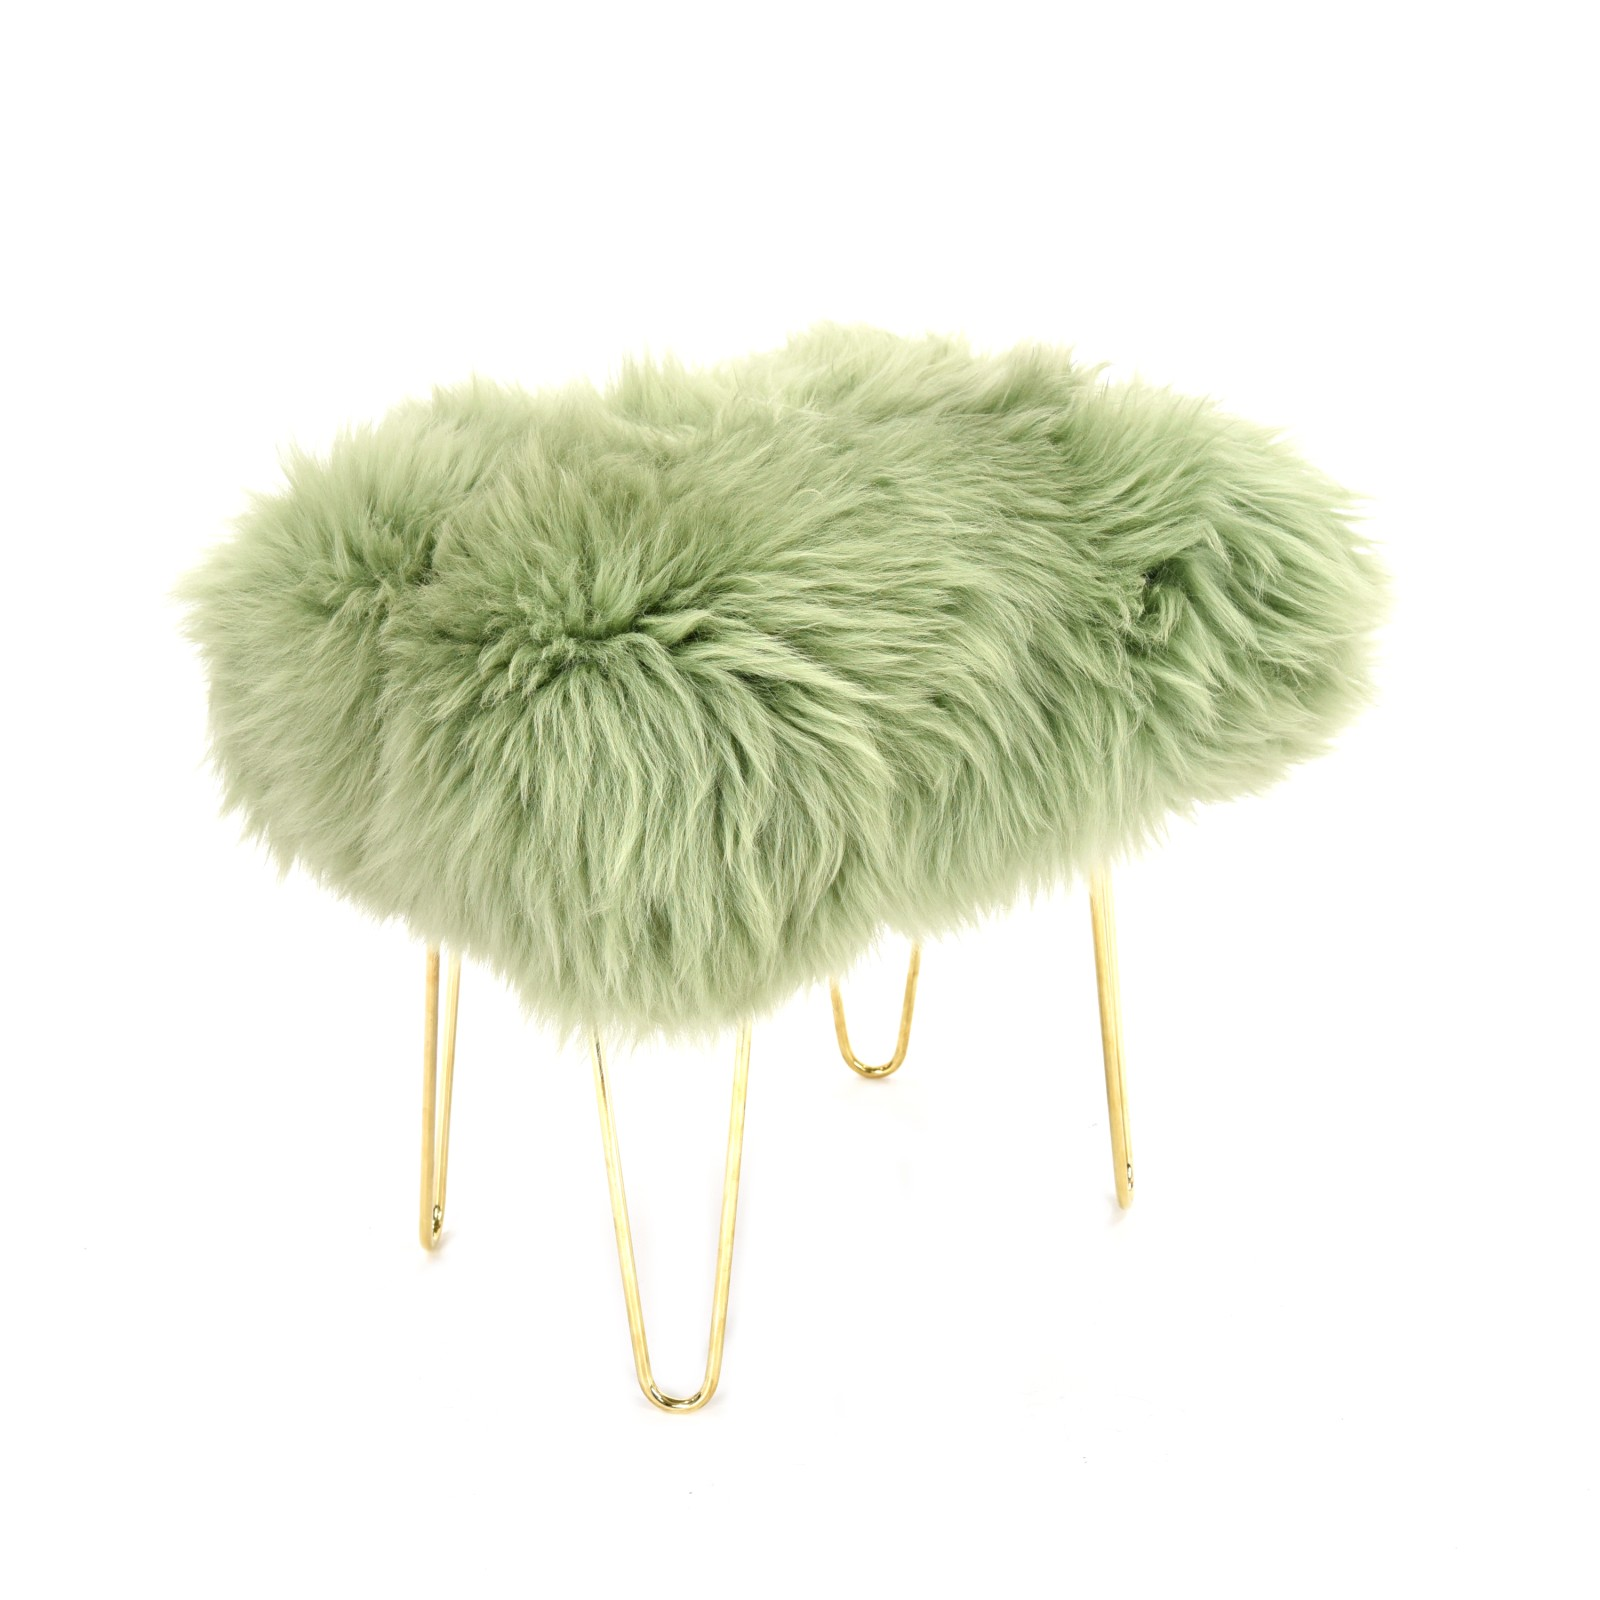 Judy Sheepskin Footstool in Sage